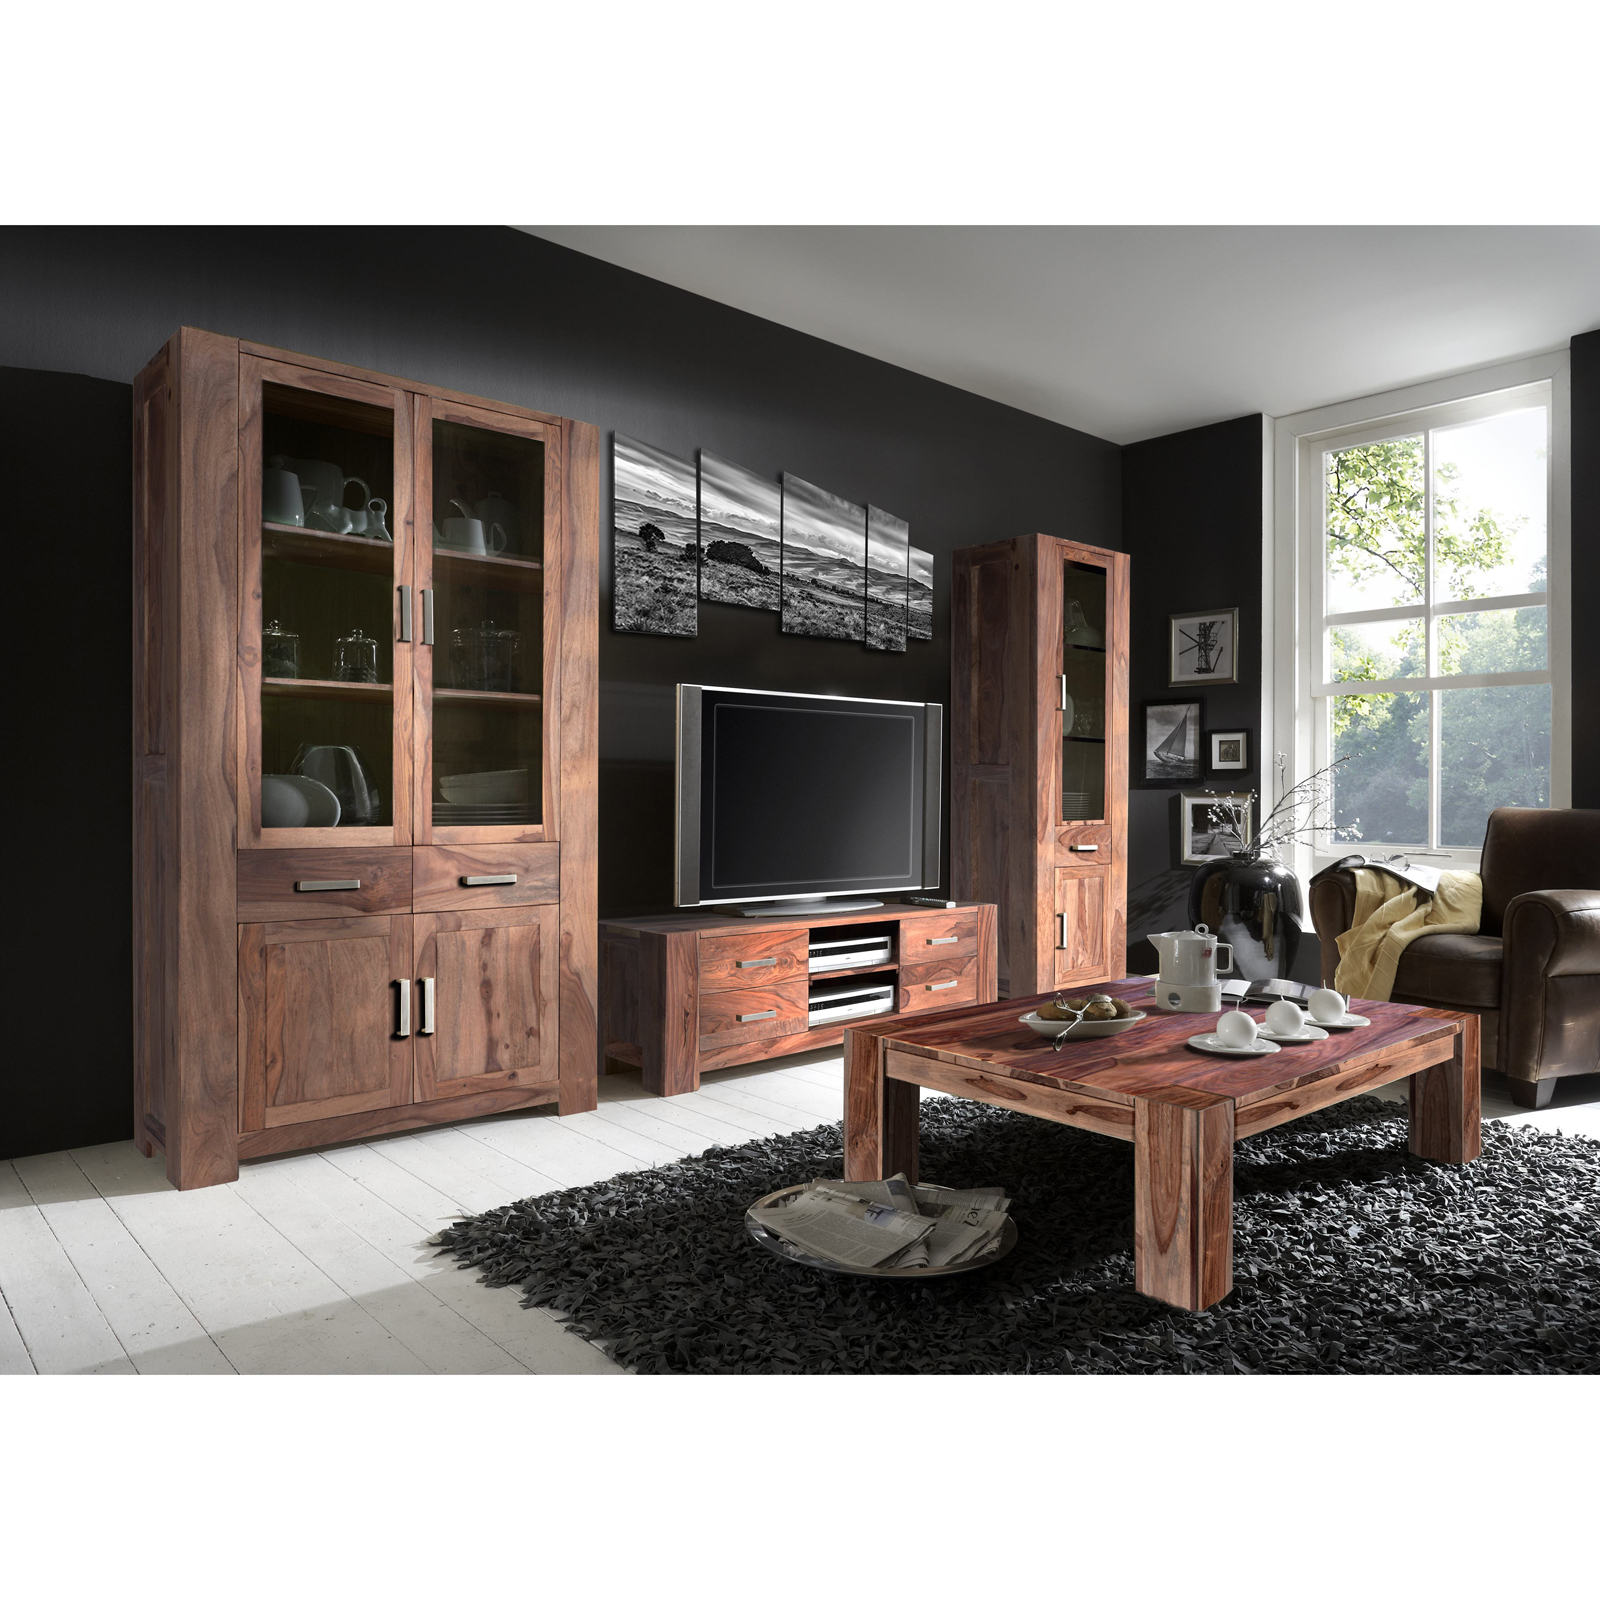 85 wohnzimmerschrank teakholz wohnzimmerschrank. Black Bedroom Furniture Sets. Home Design Ideas